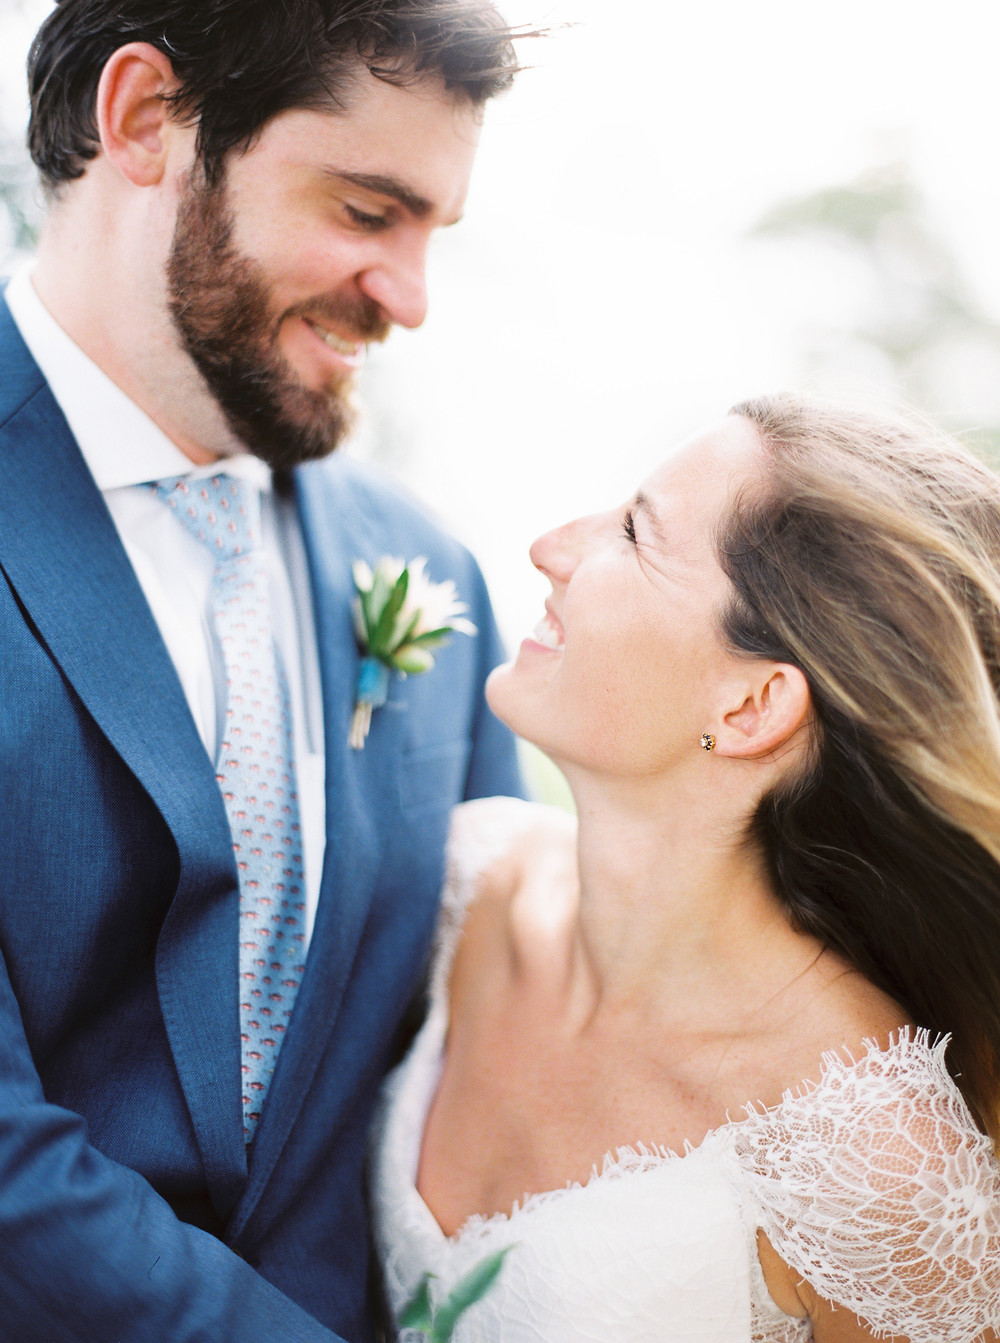 Sperry Tent Wedding on Mississippi Gulf Coast | Michelle Boyd Photography, Sapphire Events, Kim Starr Wise, and Lovegood Wedding & Event Rentals | Featured on Brides